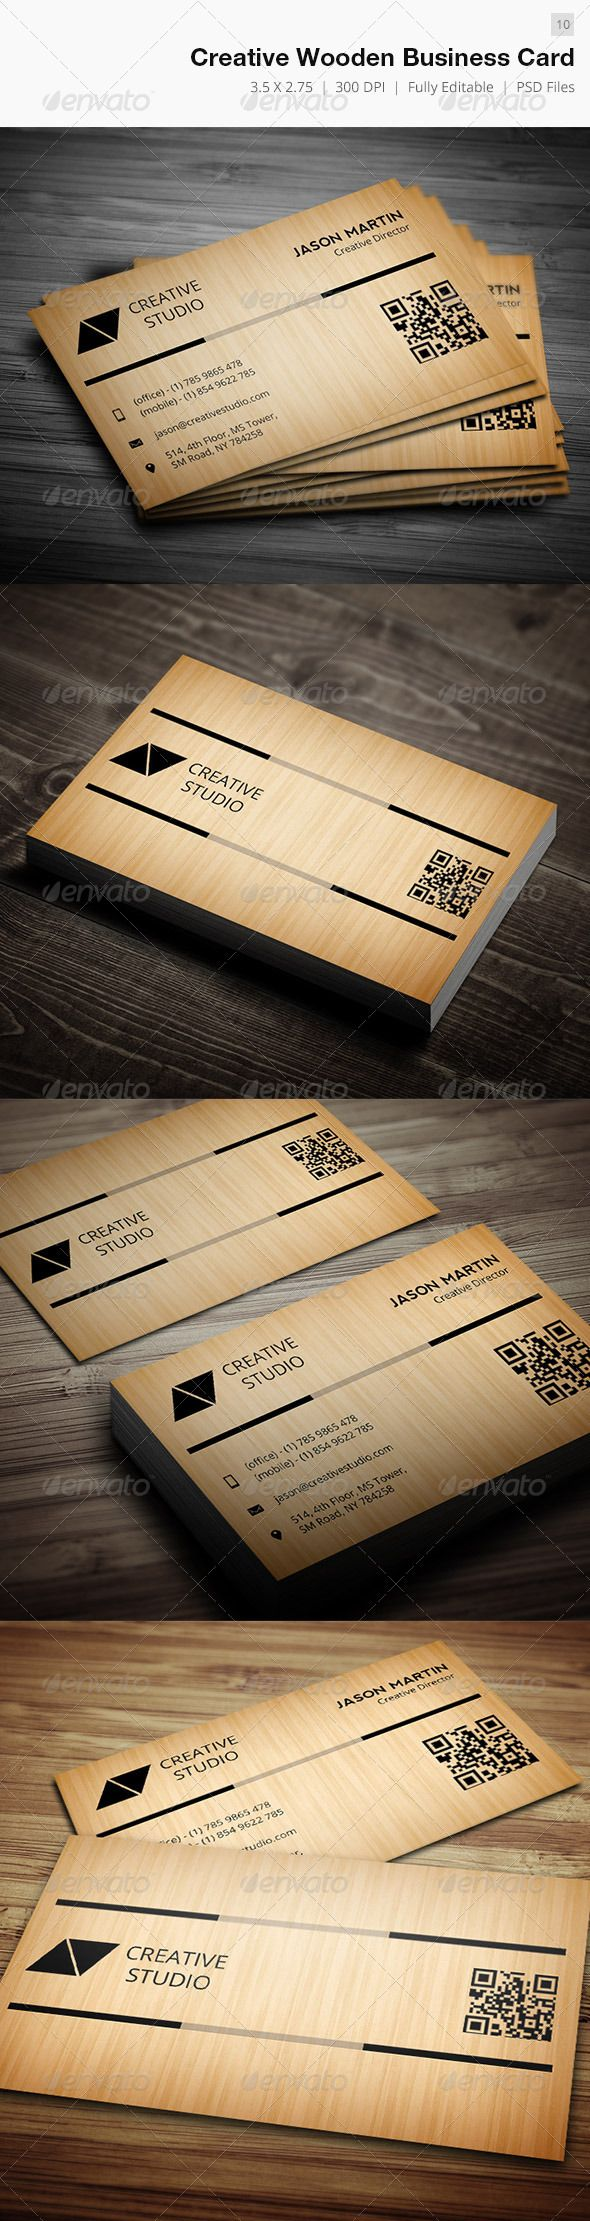 Eco friendly wood business cards images card design and card template print business cards wood green choice image card design and card 13 best permaset inks images reheart Image collections